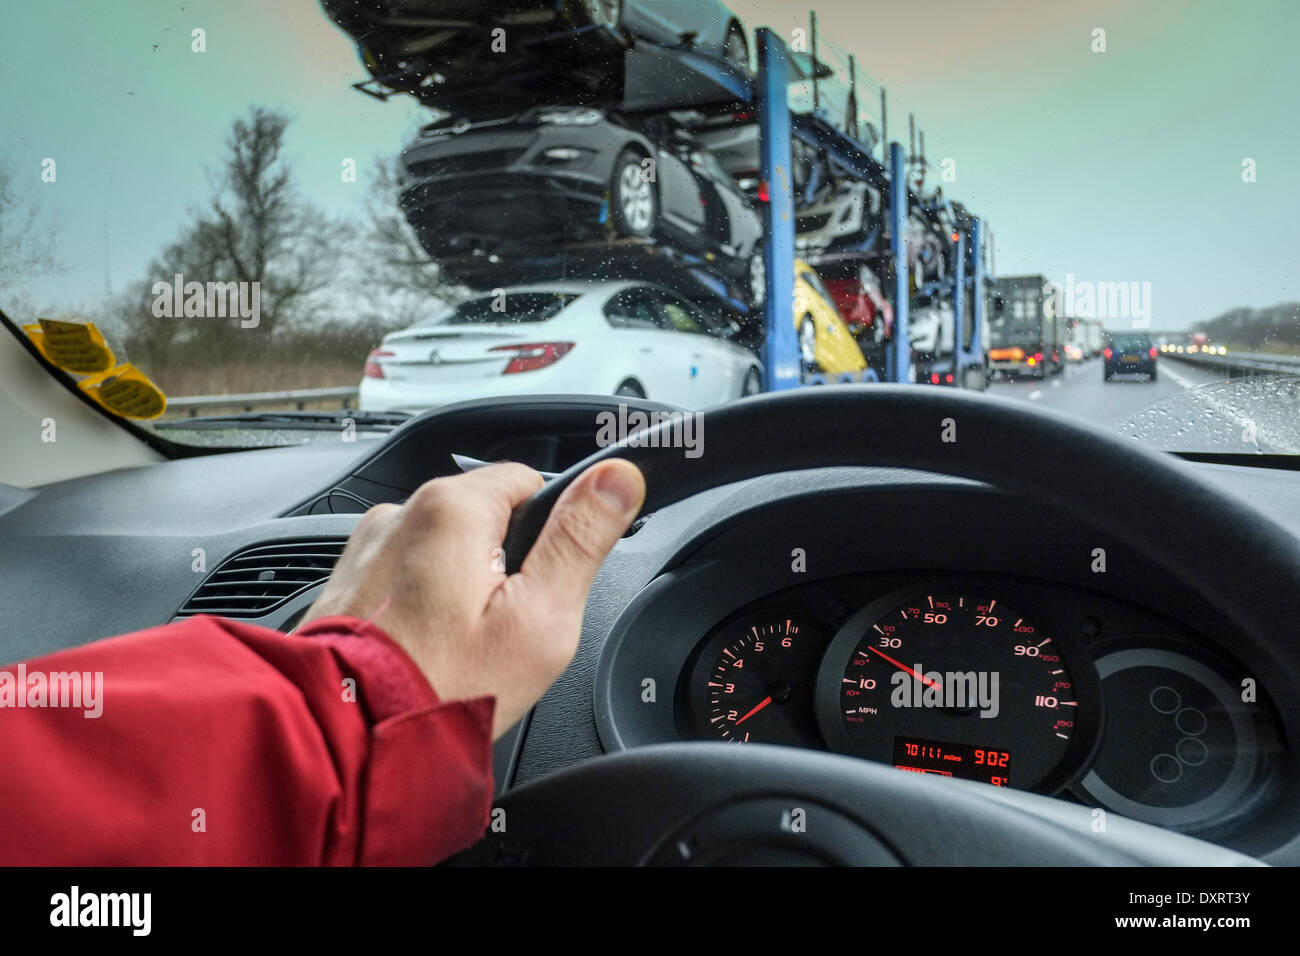 Driving on motorway in bad weather, United Kingdom - Stock Image